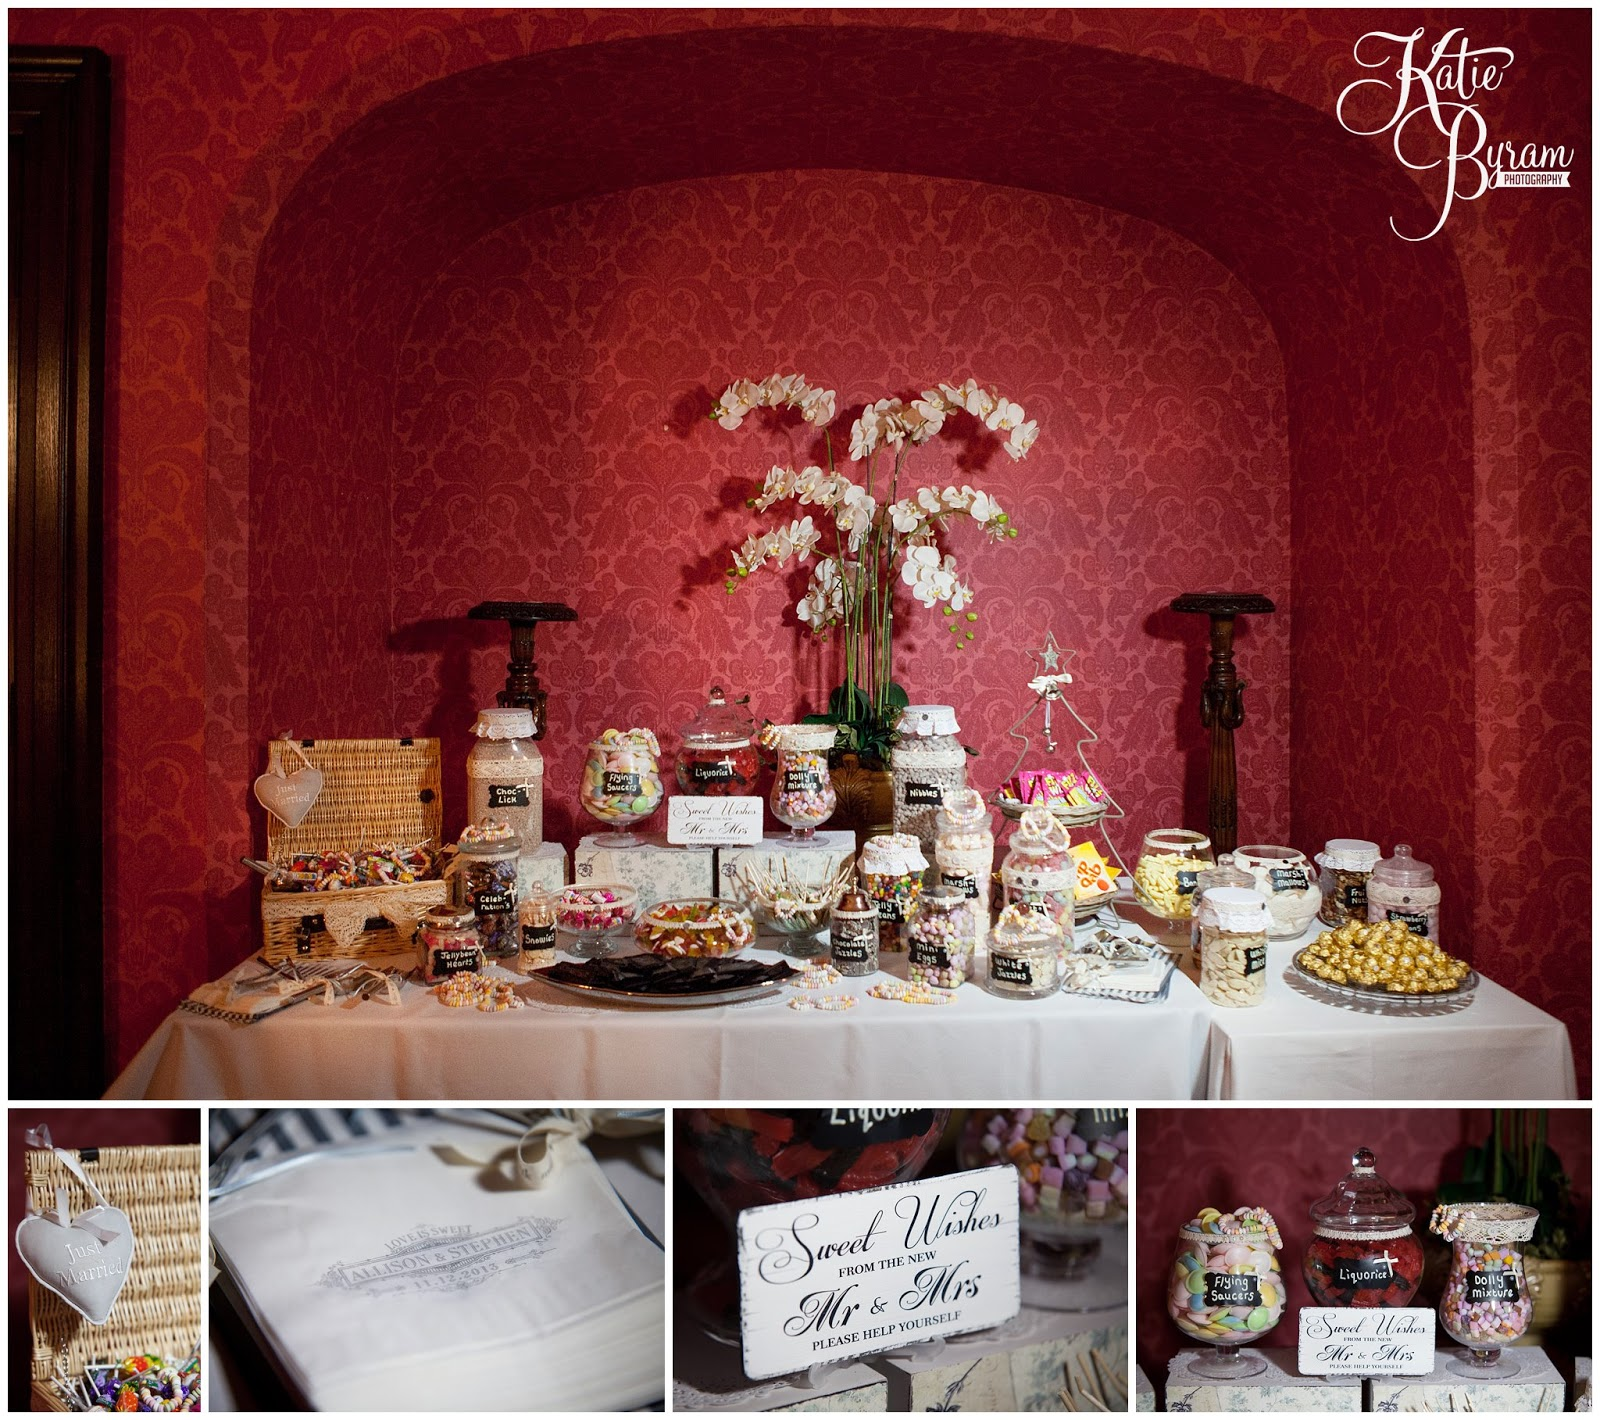 candy buffet, sweet table wedding, ellingham hall wedding, alnwick wedding, katie byram photography, ellingham hall, mia sposa bridal, wedding venues north east, newcastle wedding photographer, ellingham, alnwick treehouse wedding, adam prest flowers, winter wedding, winter wedding theme, by wendy stationery, quirky wedding photography, northumberland wedding, northumberland, dani.mua, dani make up artist, lisa cameron hair